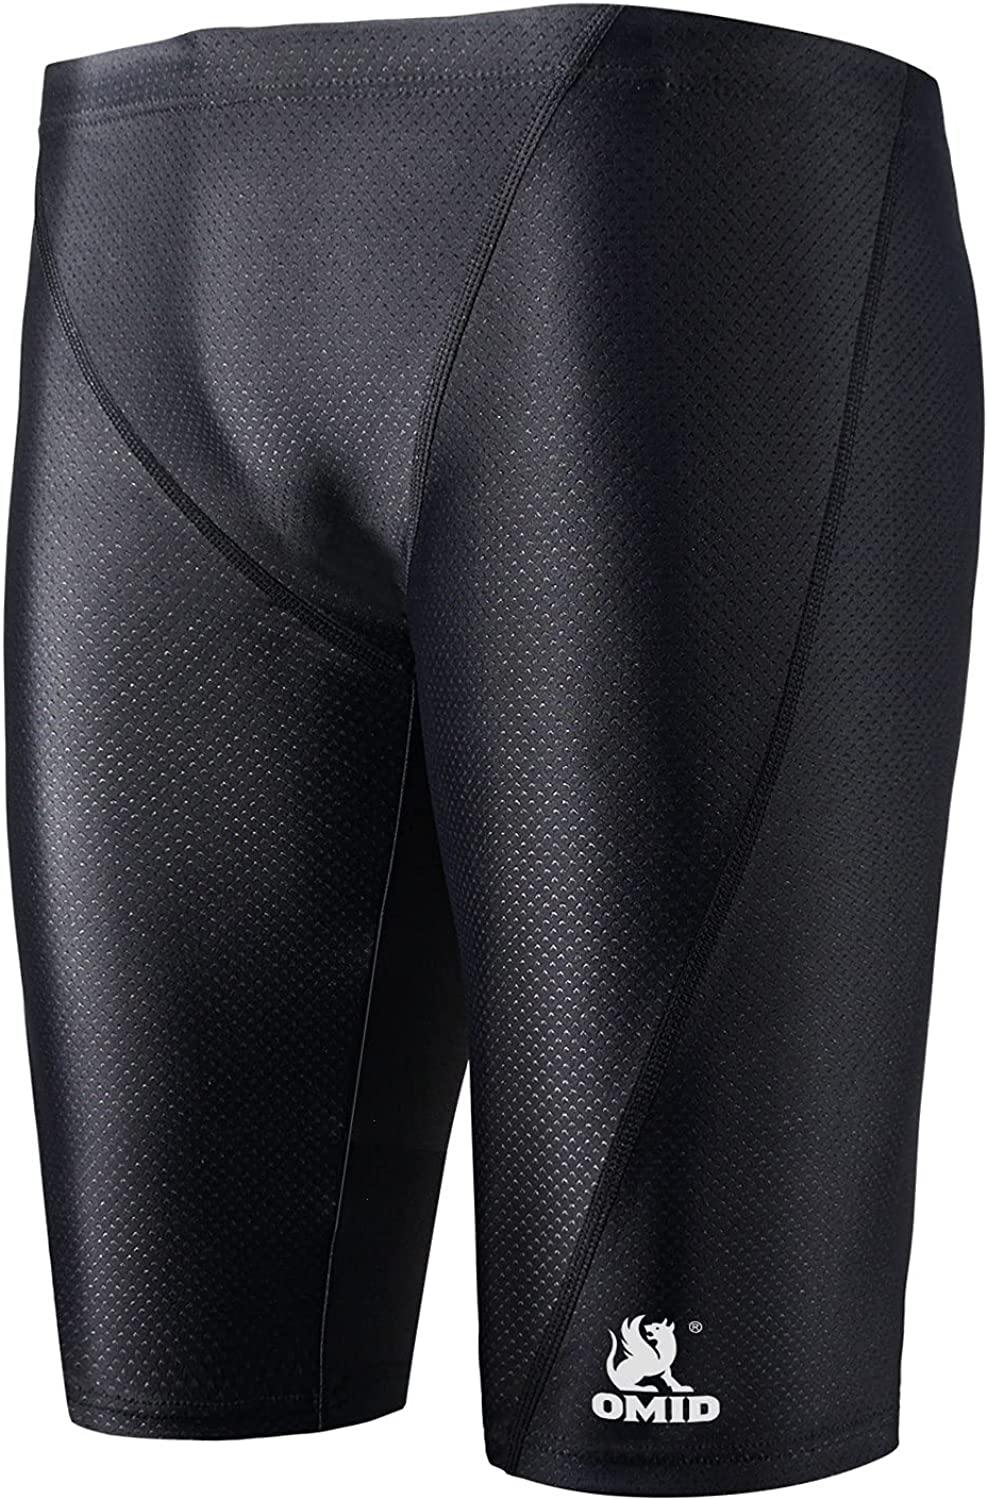 OMID Men's Swimming Jammers Endurance+ Quick Dry Swimsuit Solid Swim Jammers for Men: Clothing